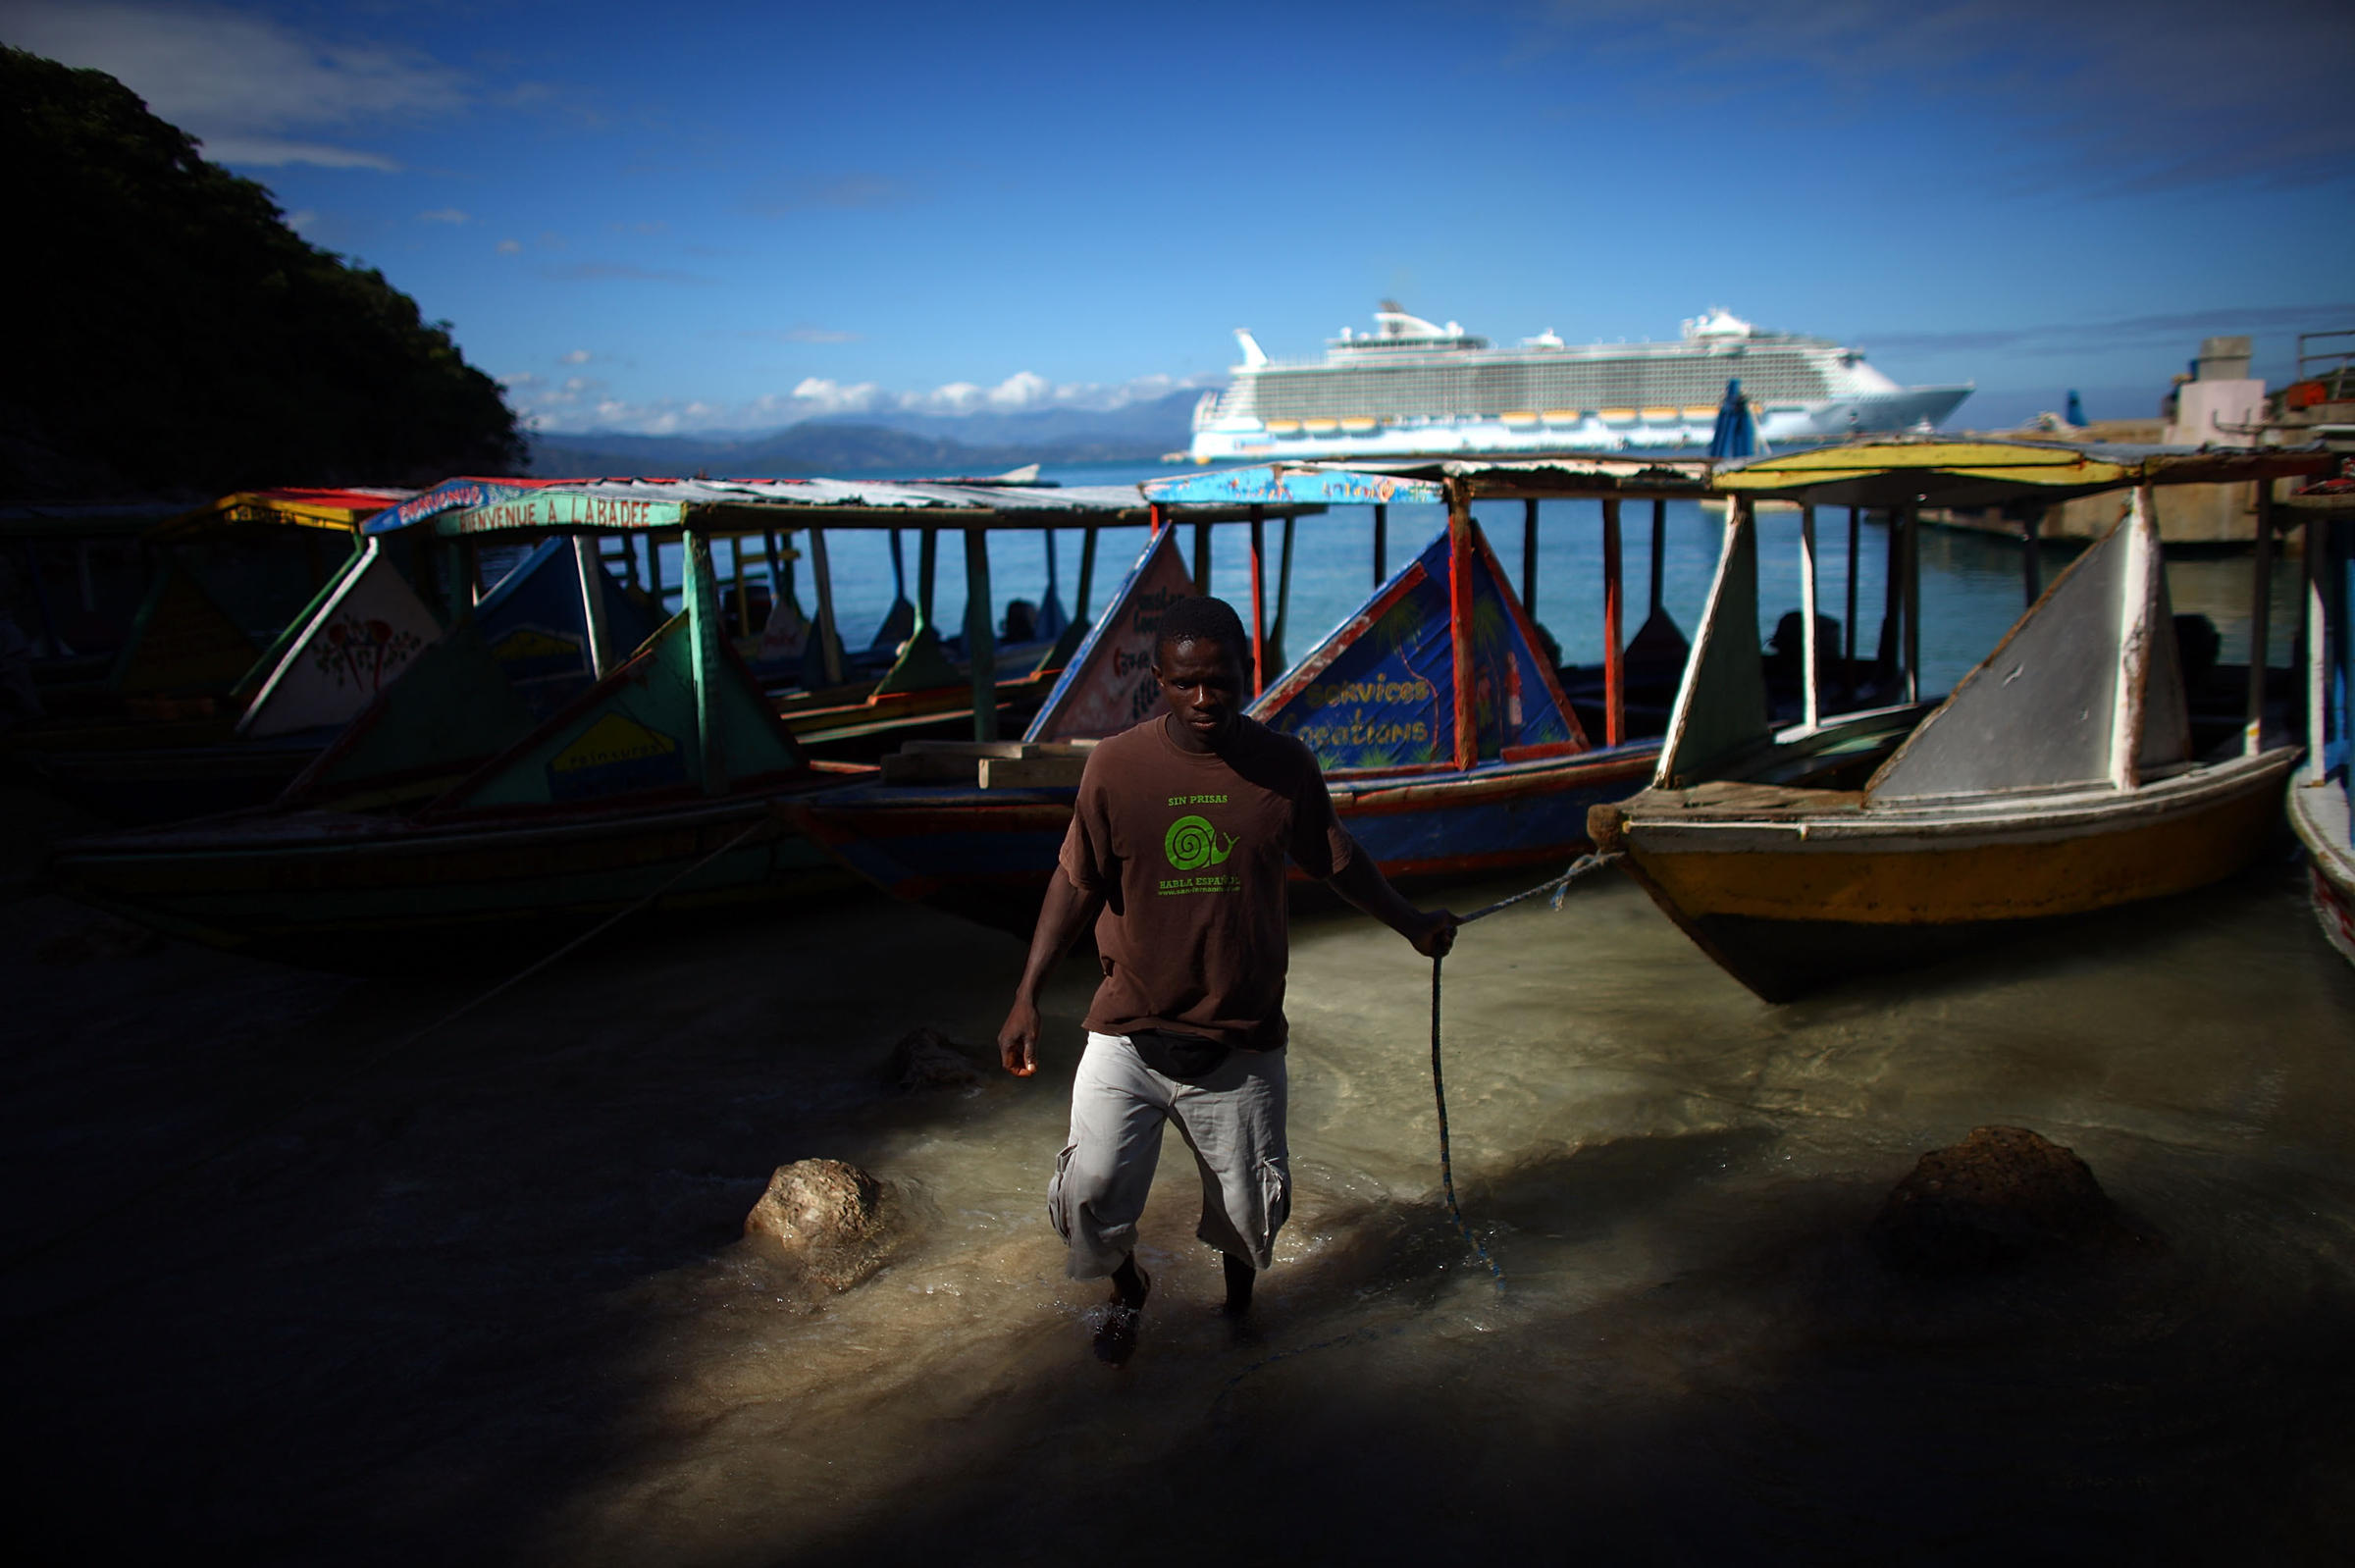 For Your Next Caribbean Vacation, Haiti     Maybe? | WUNC